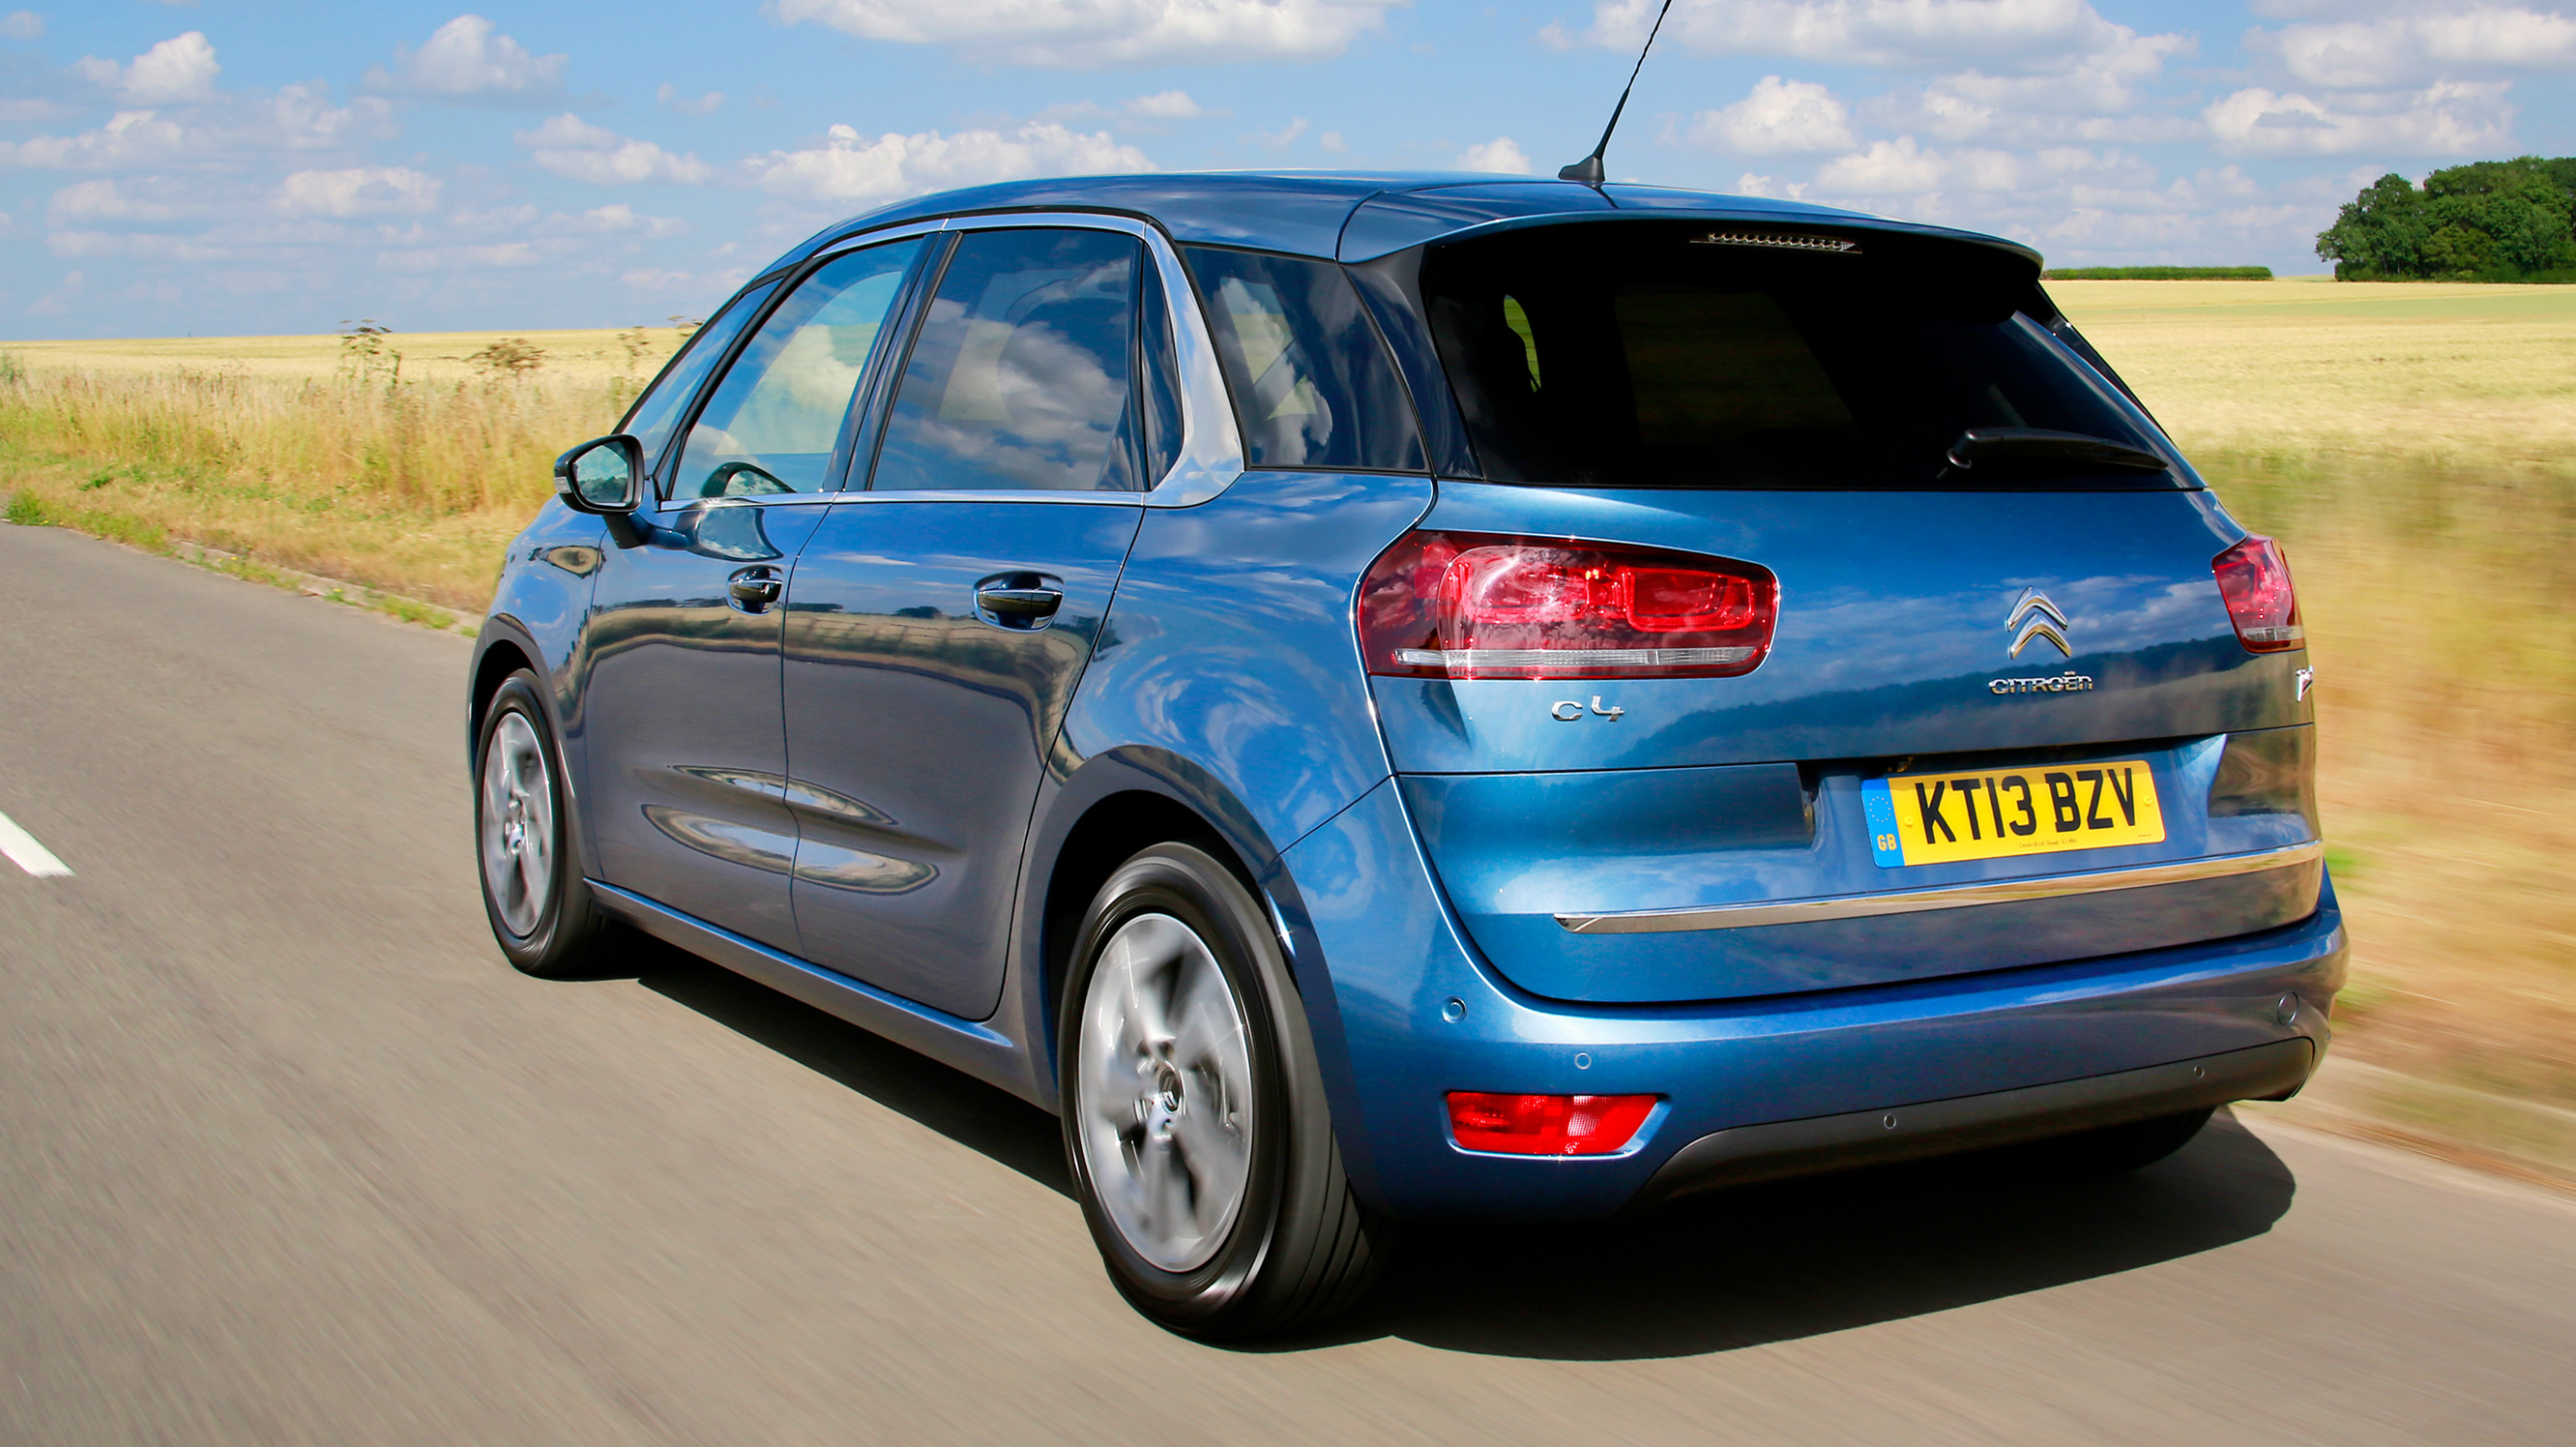 citroen c4 picasso owners manual pdf